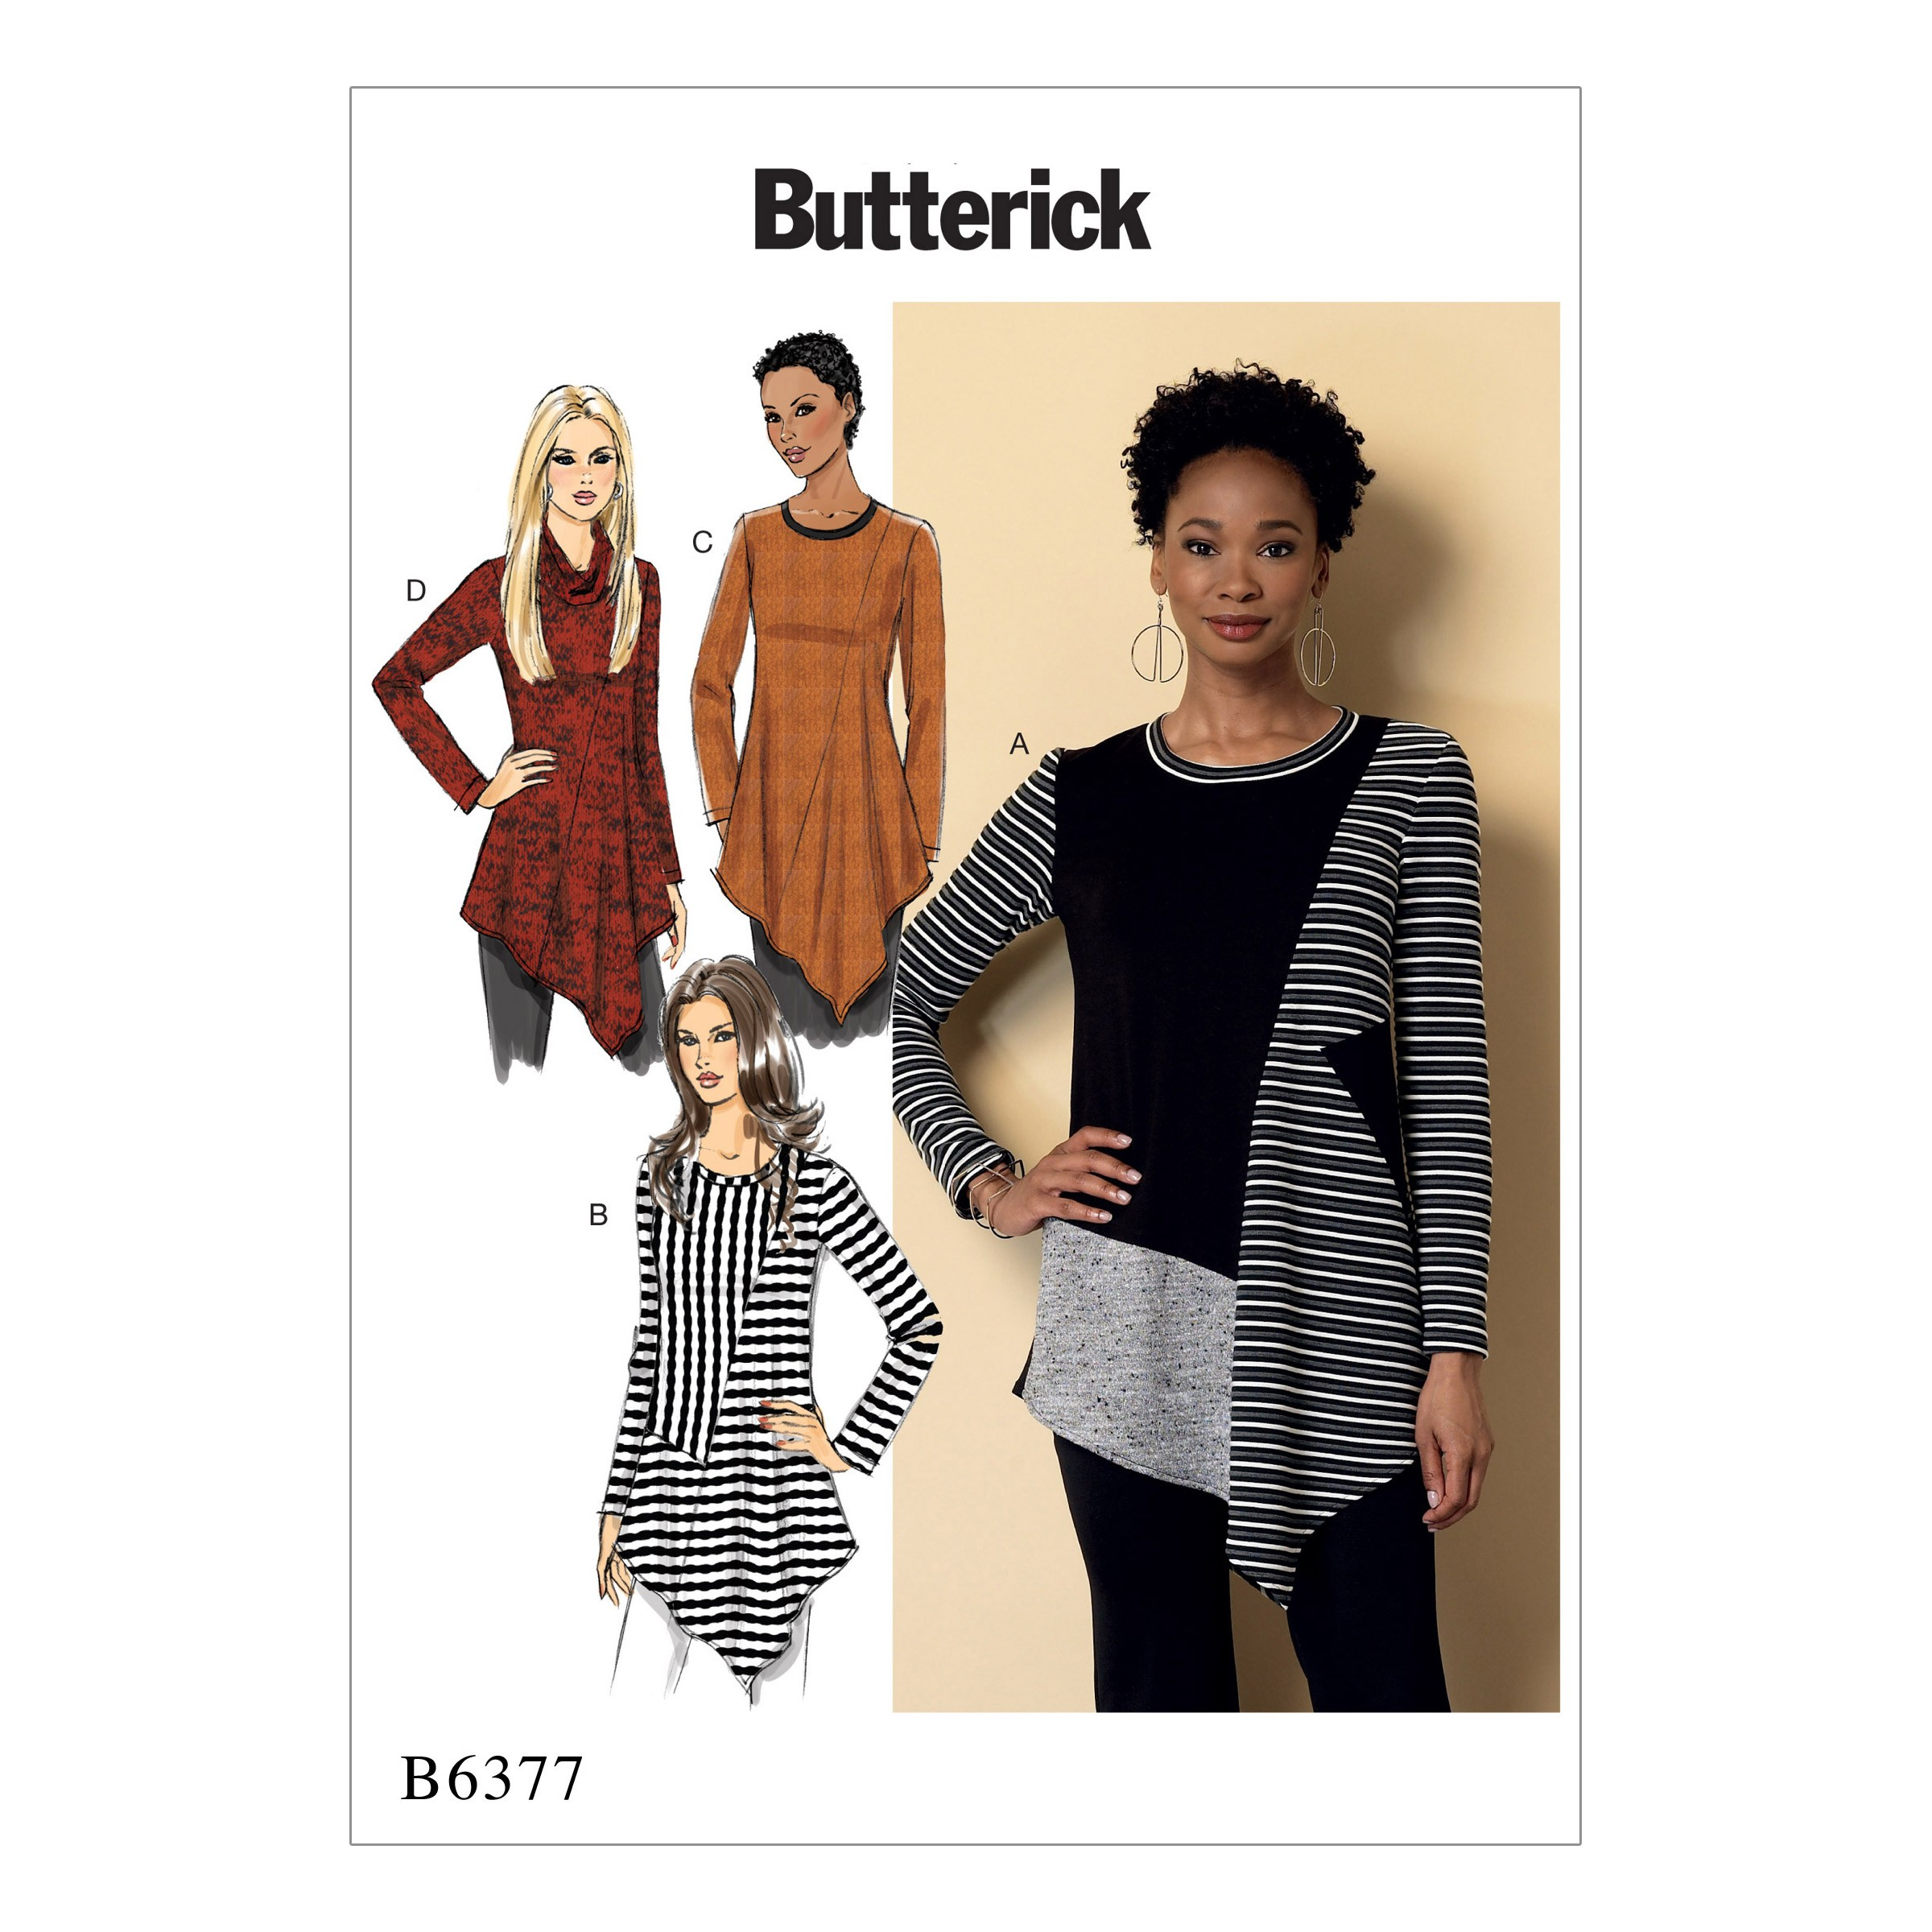 Butterick Sewing Pattern 6377 Misses' Seamed Tunics with Asymmetrical Hems